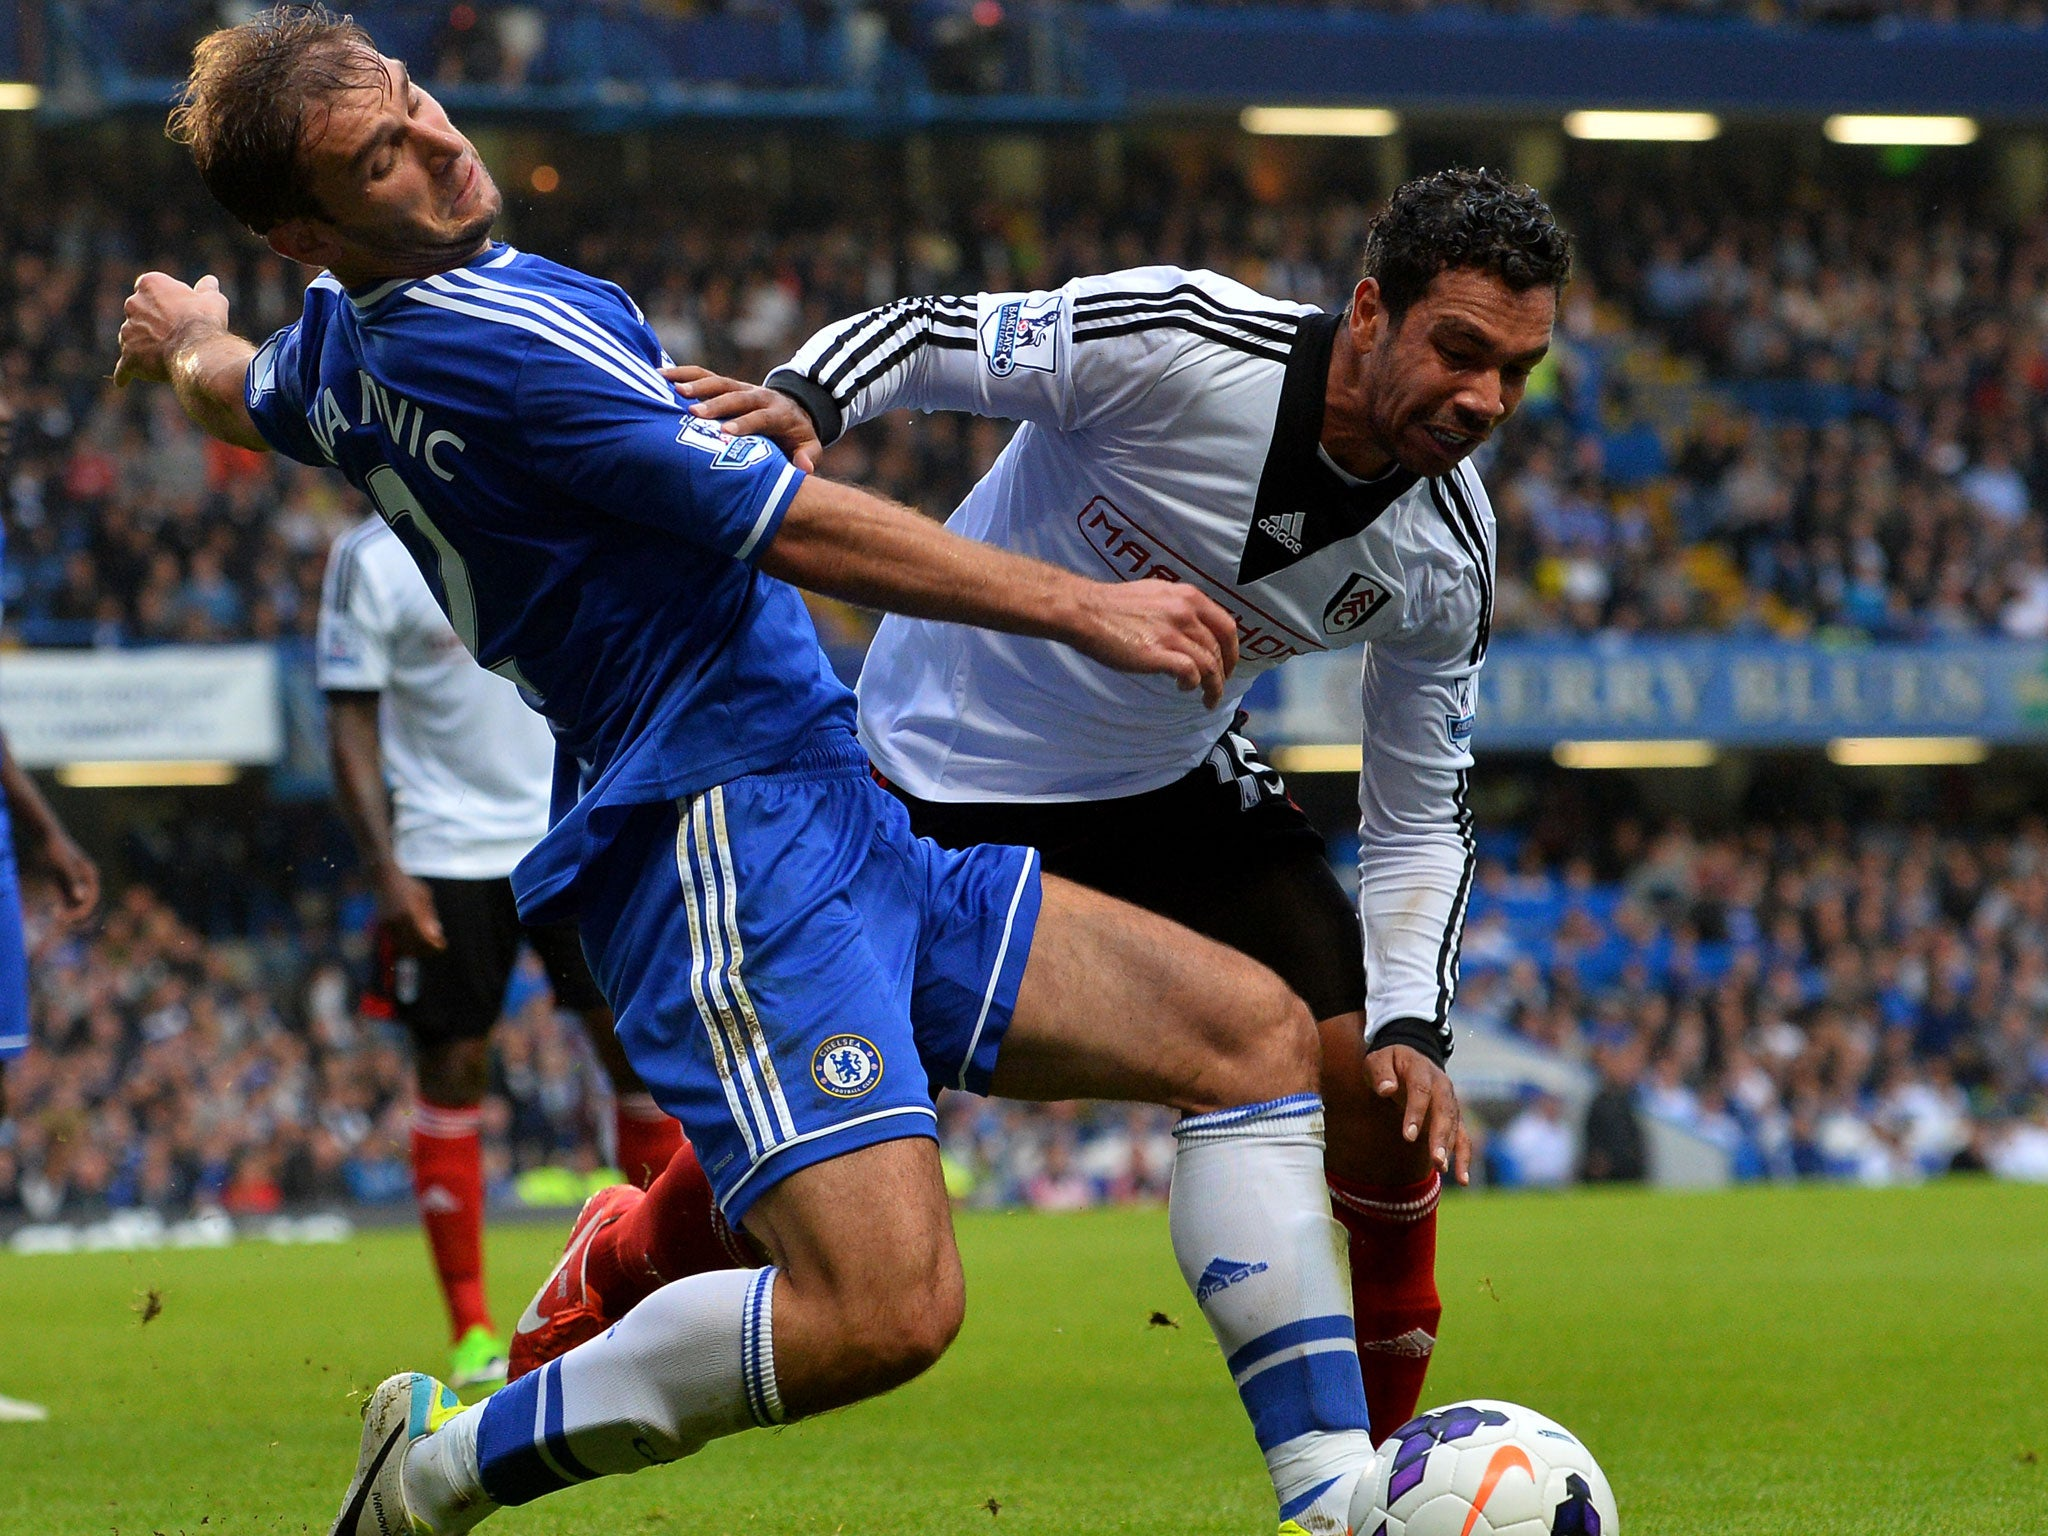 Branislav Ivanovic claims there is more to e from Chelsea